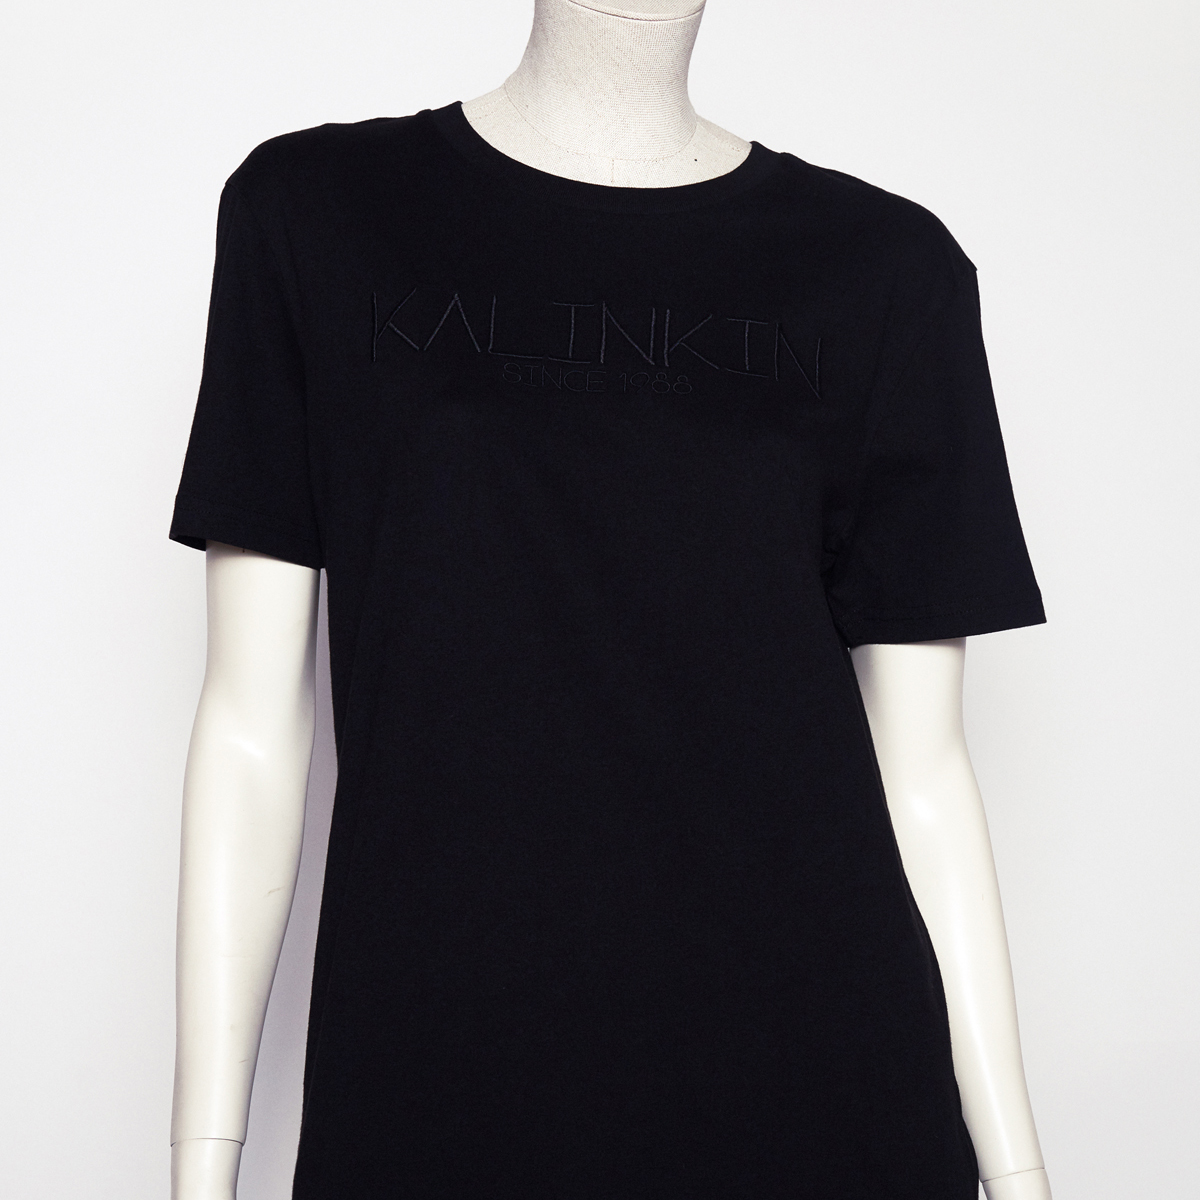 SINCE 1988 T-SHIRT, BLACK